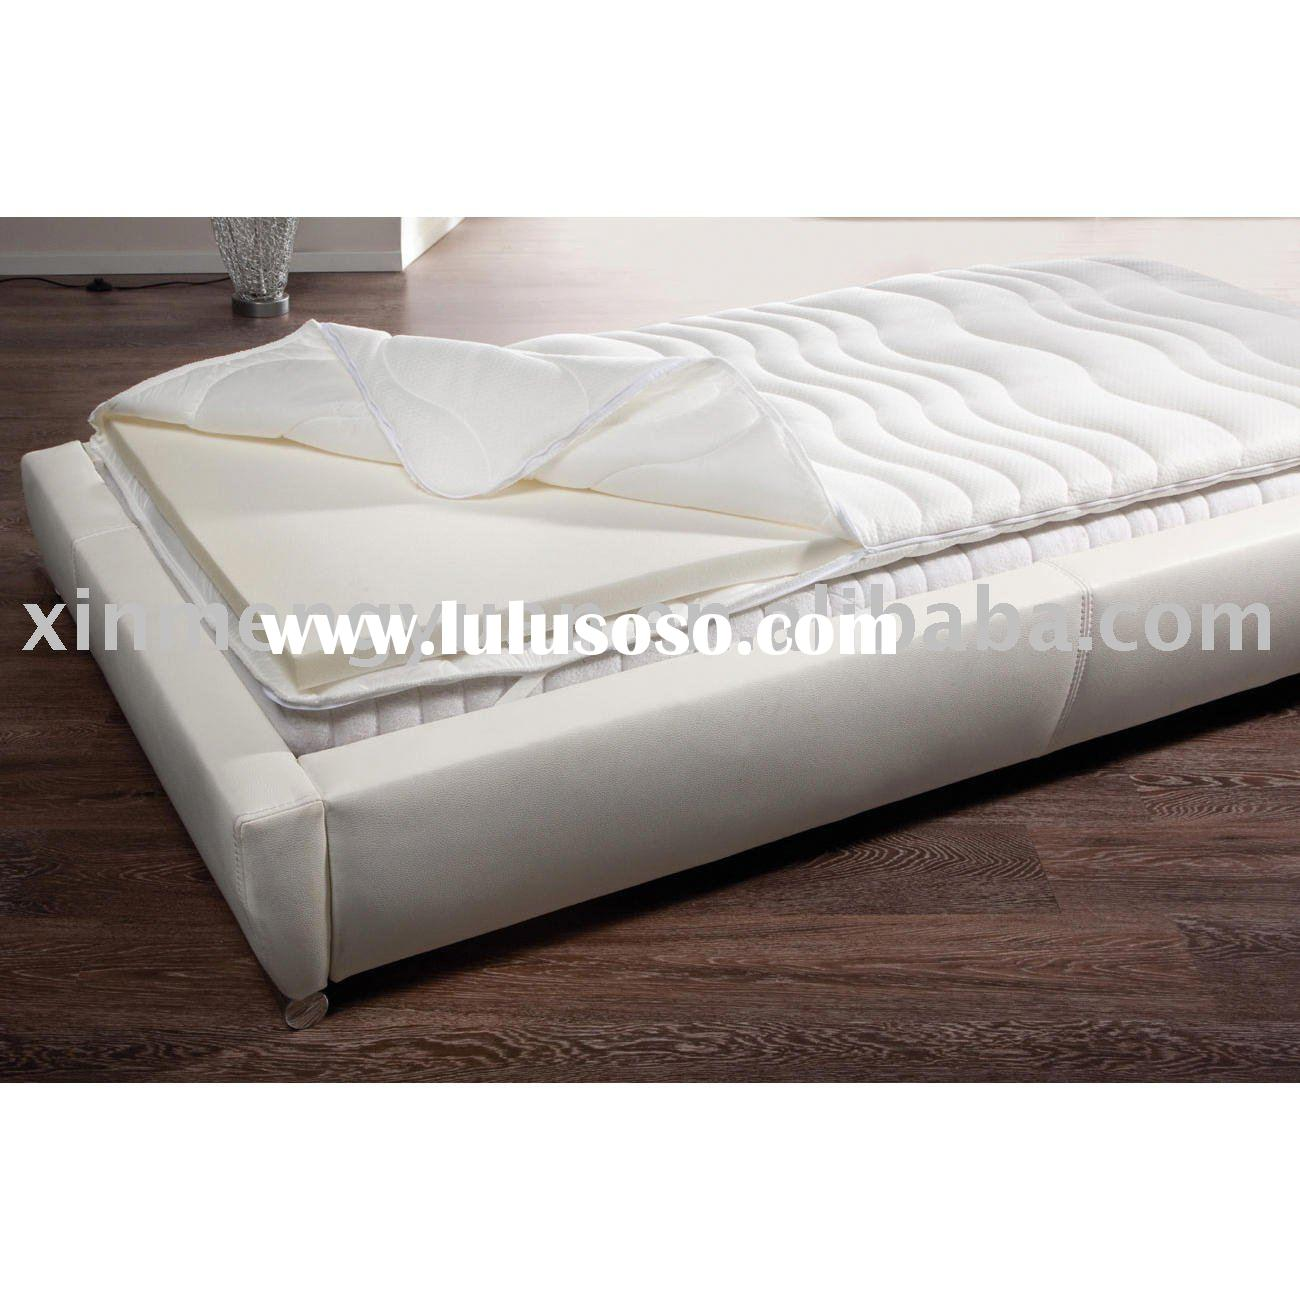 Zipper Mattress Cover Zipper Mattress Cover Manufacturers